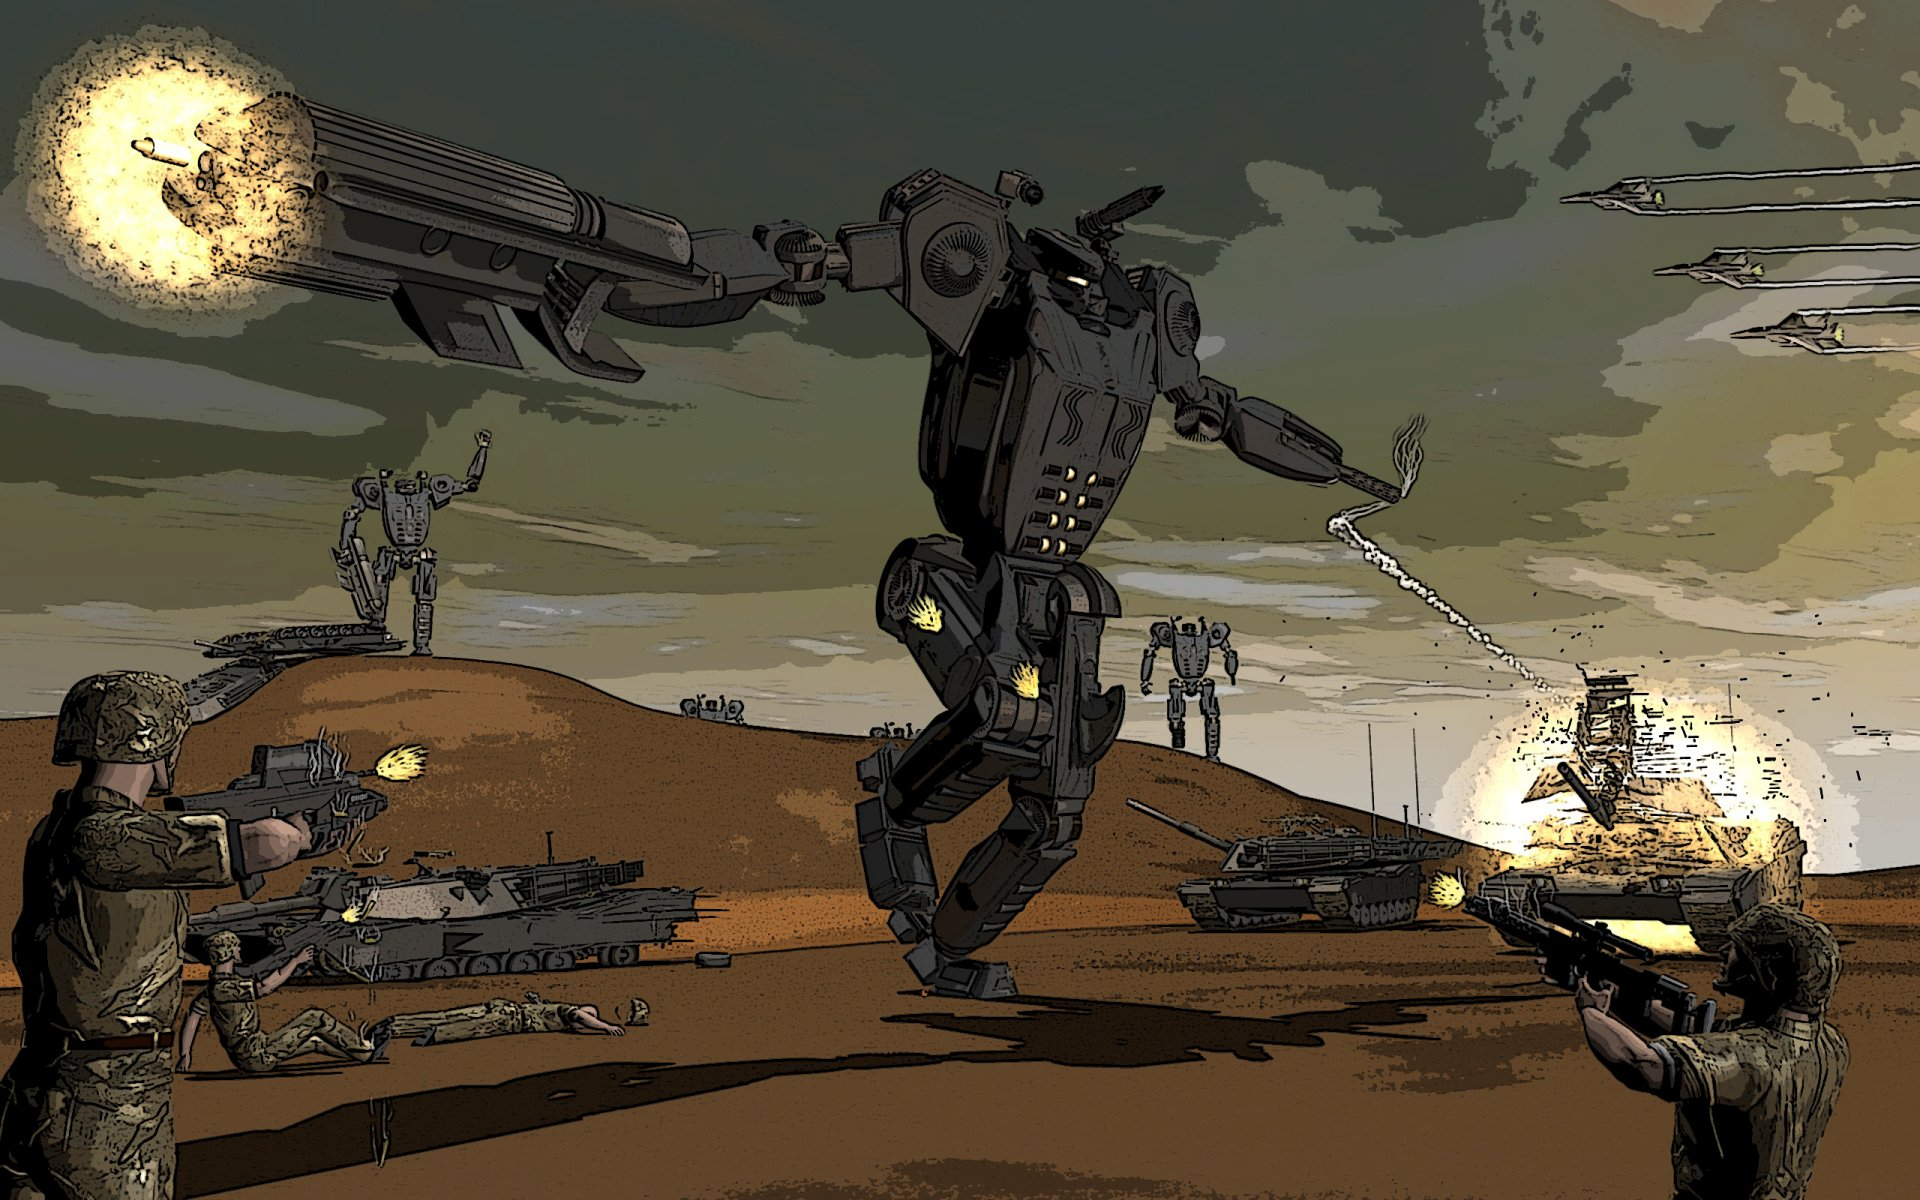 Sci Fi - Robot  War Artistic Wallpaper